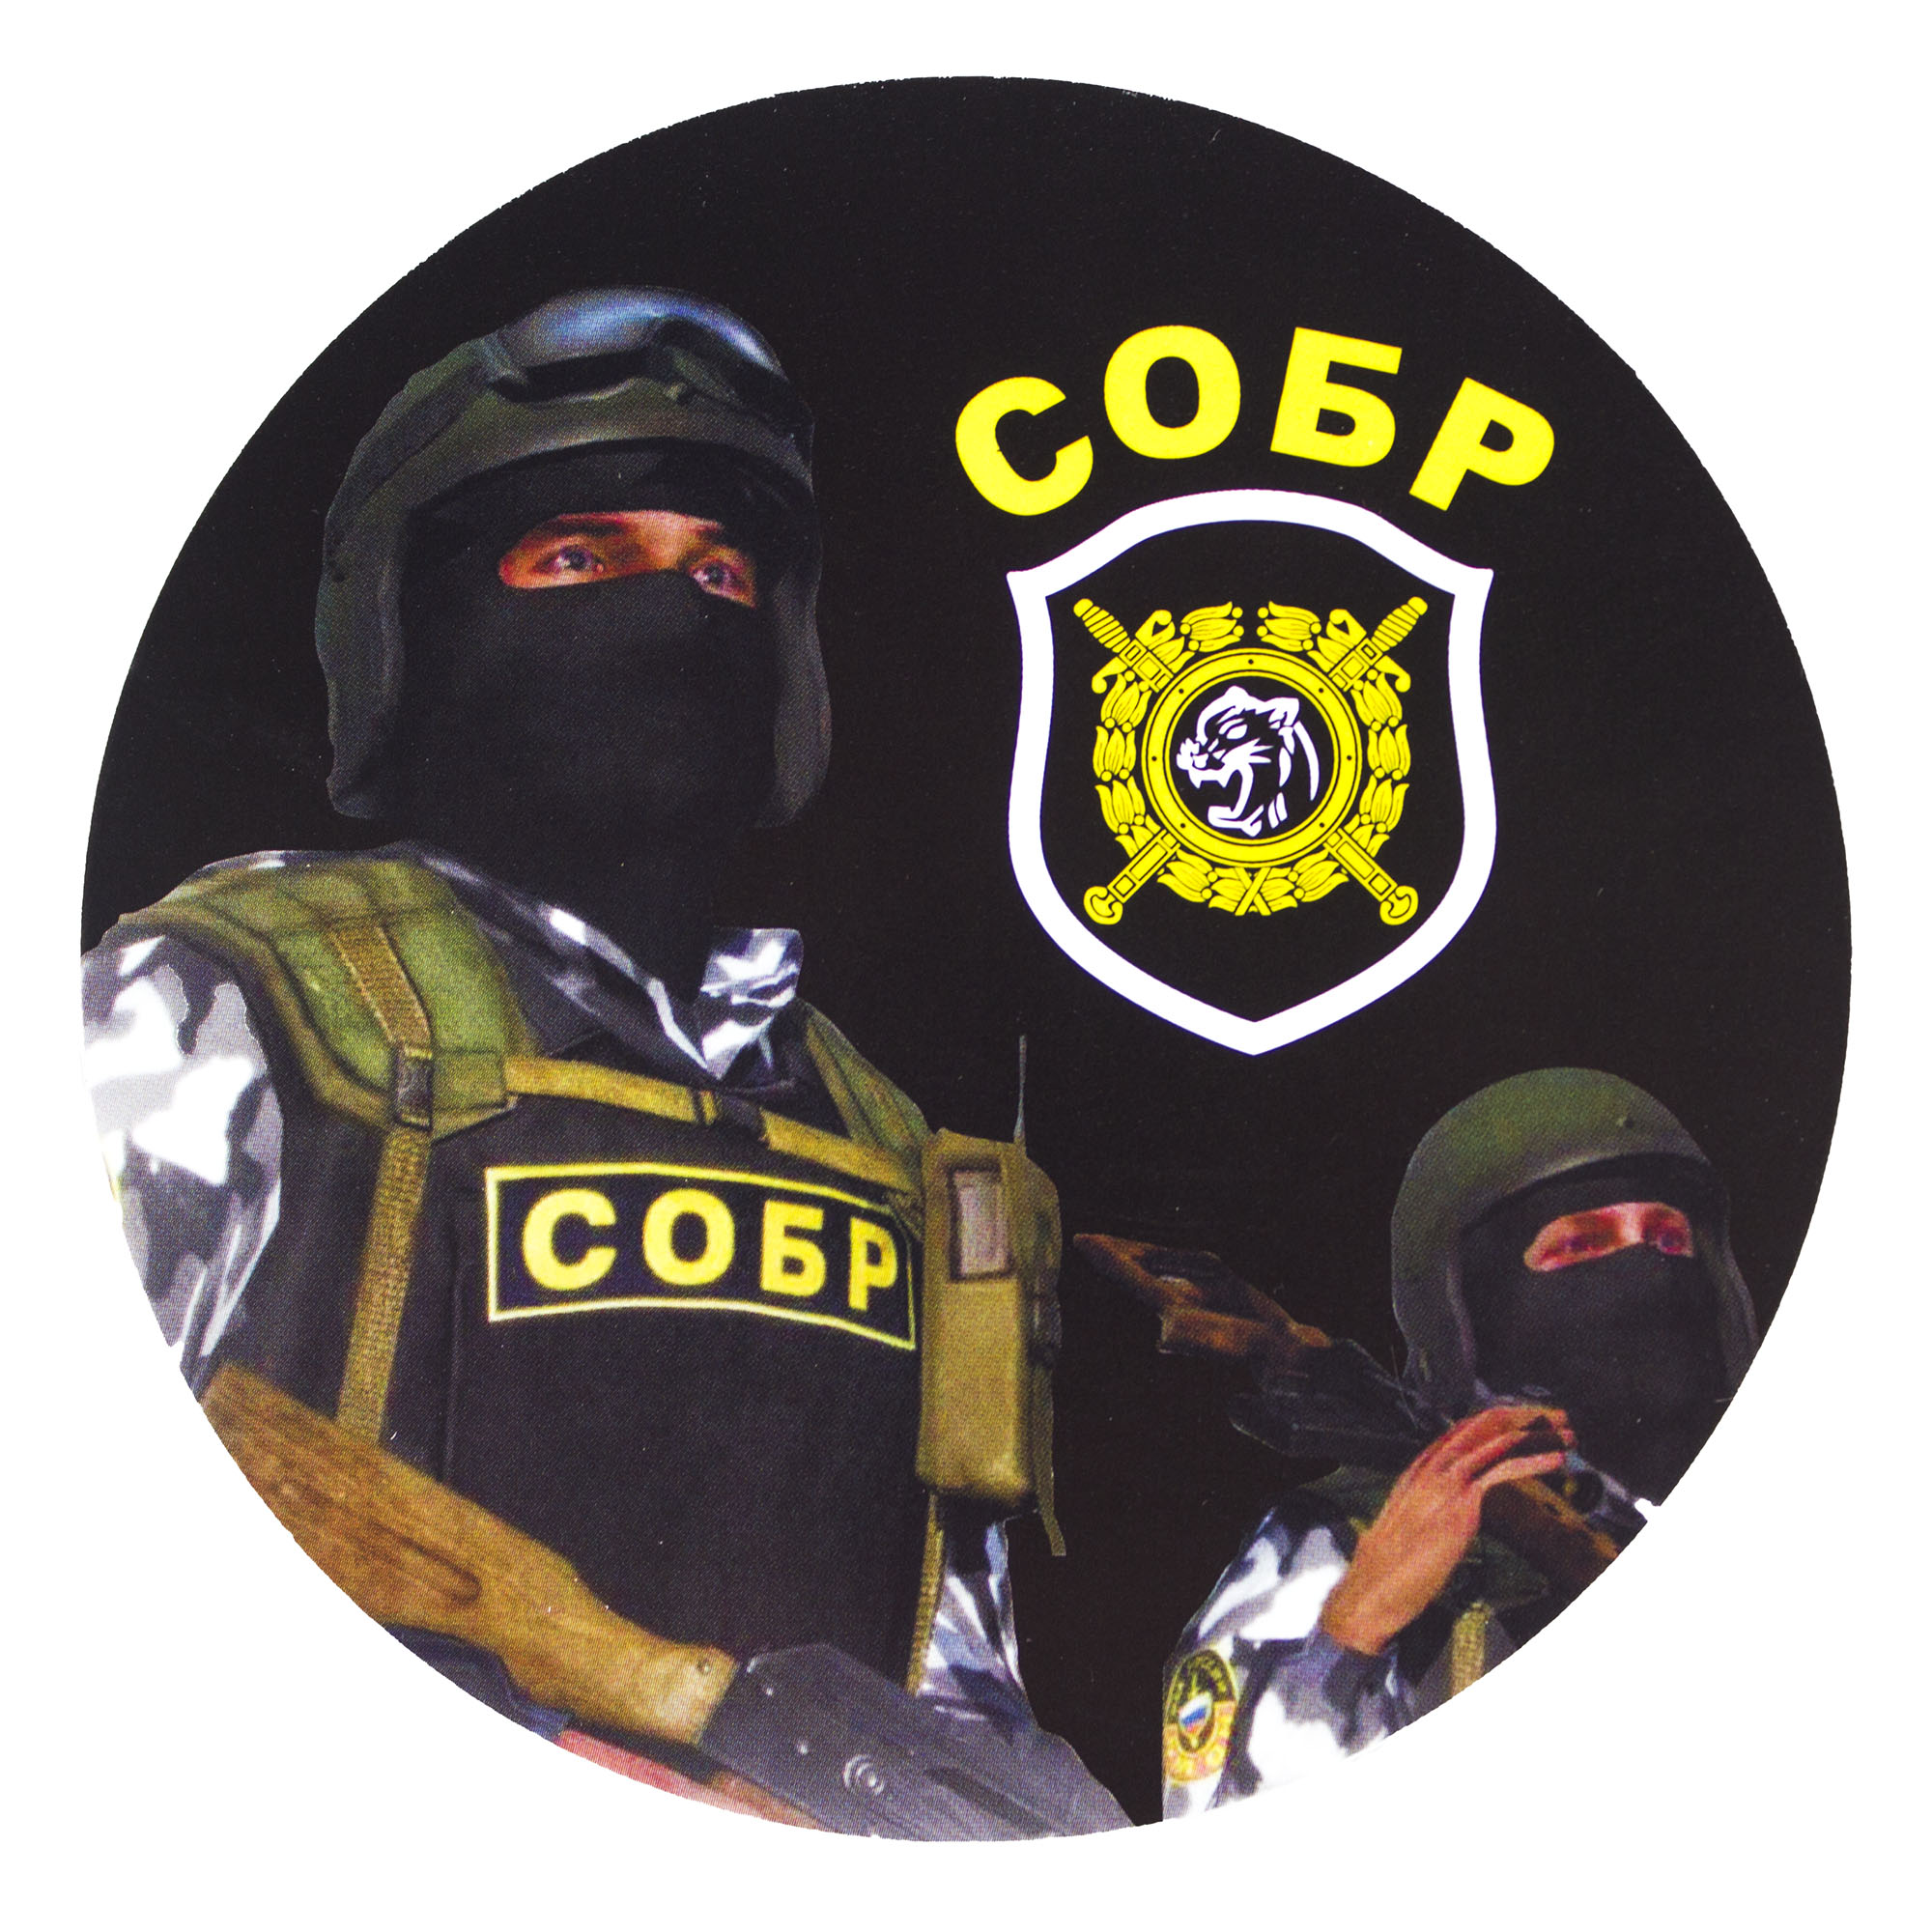 SOBR - Fighter sticker